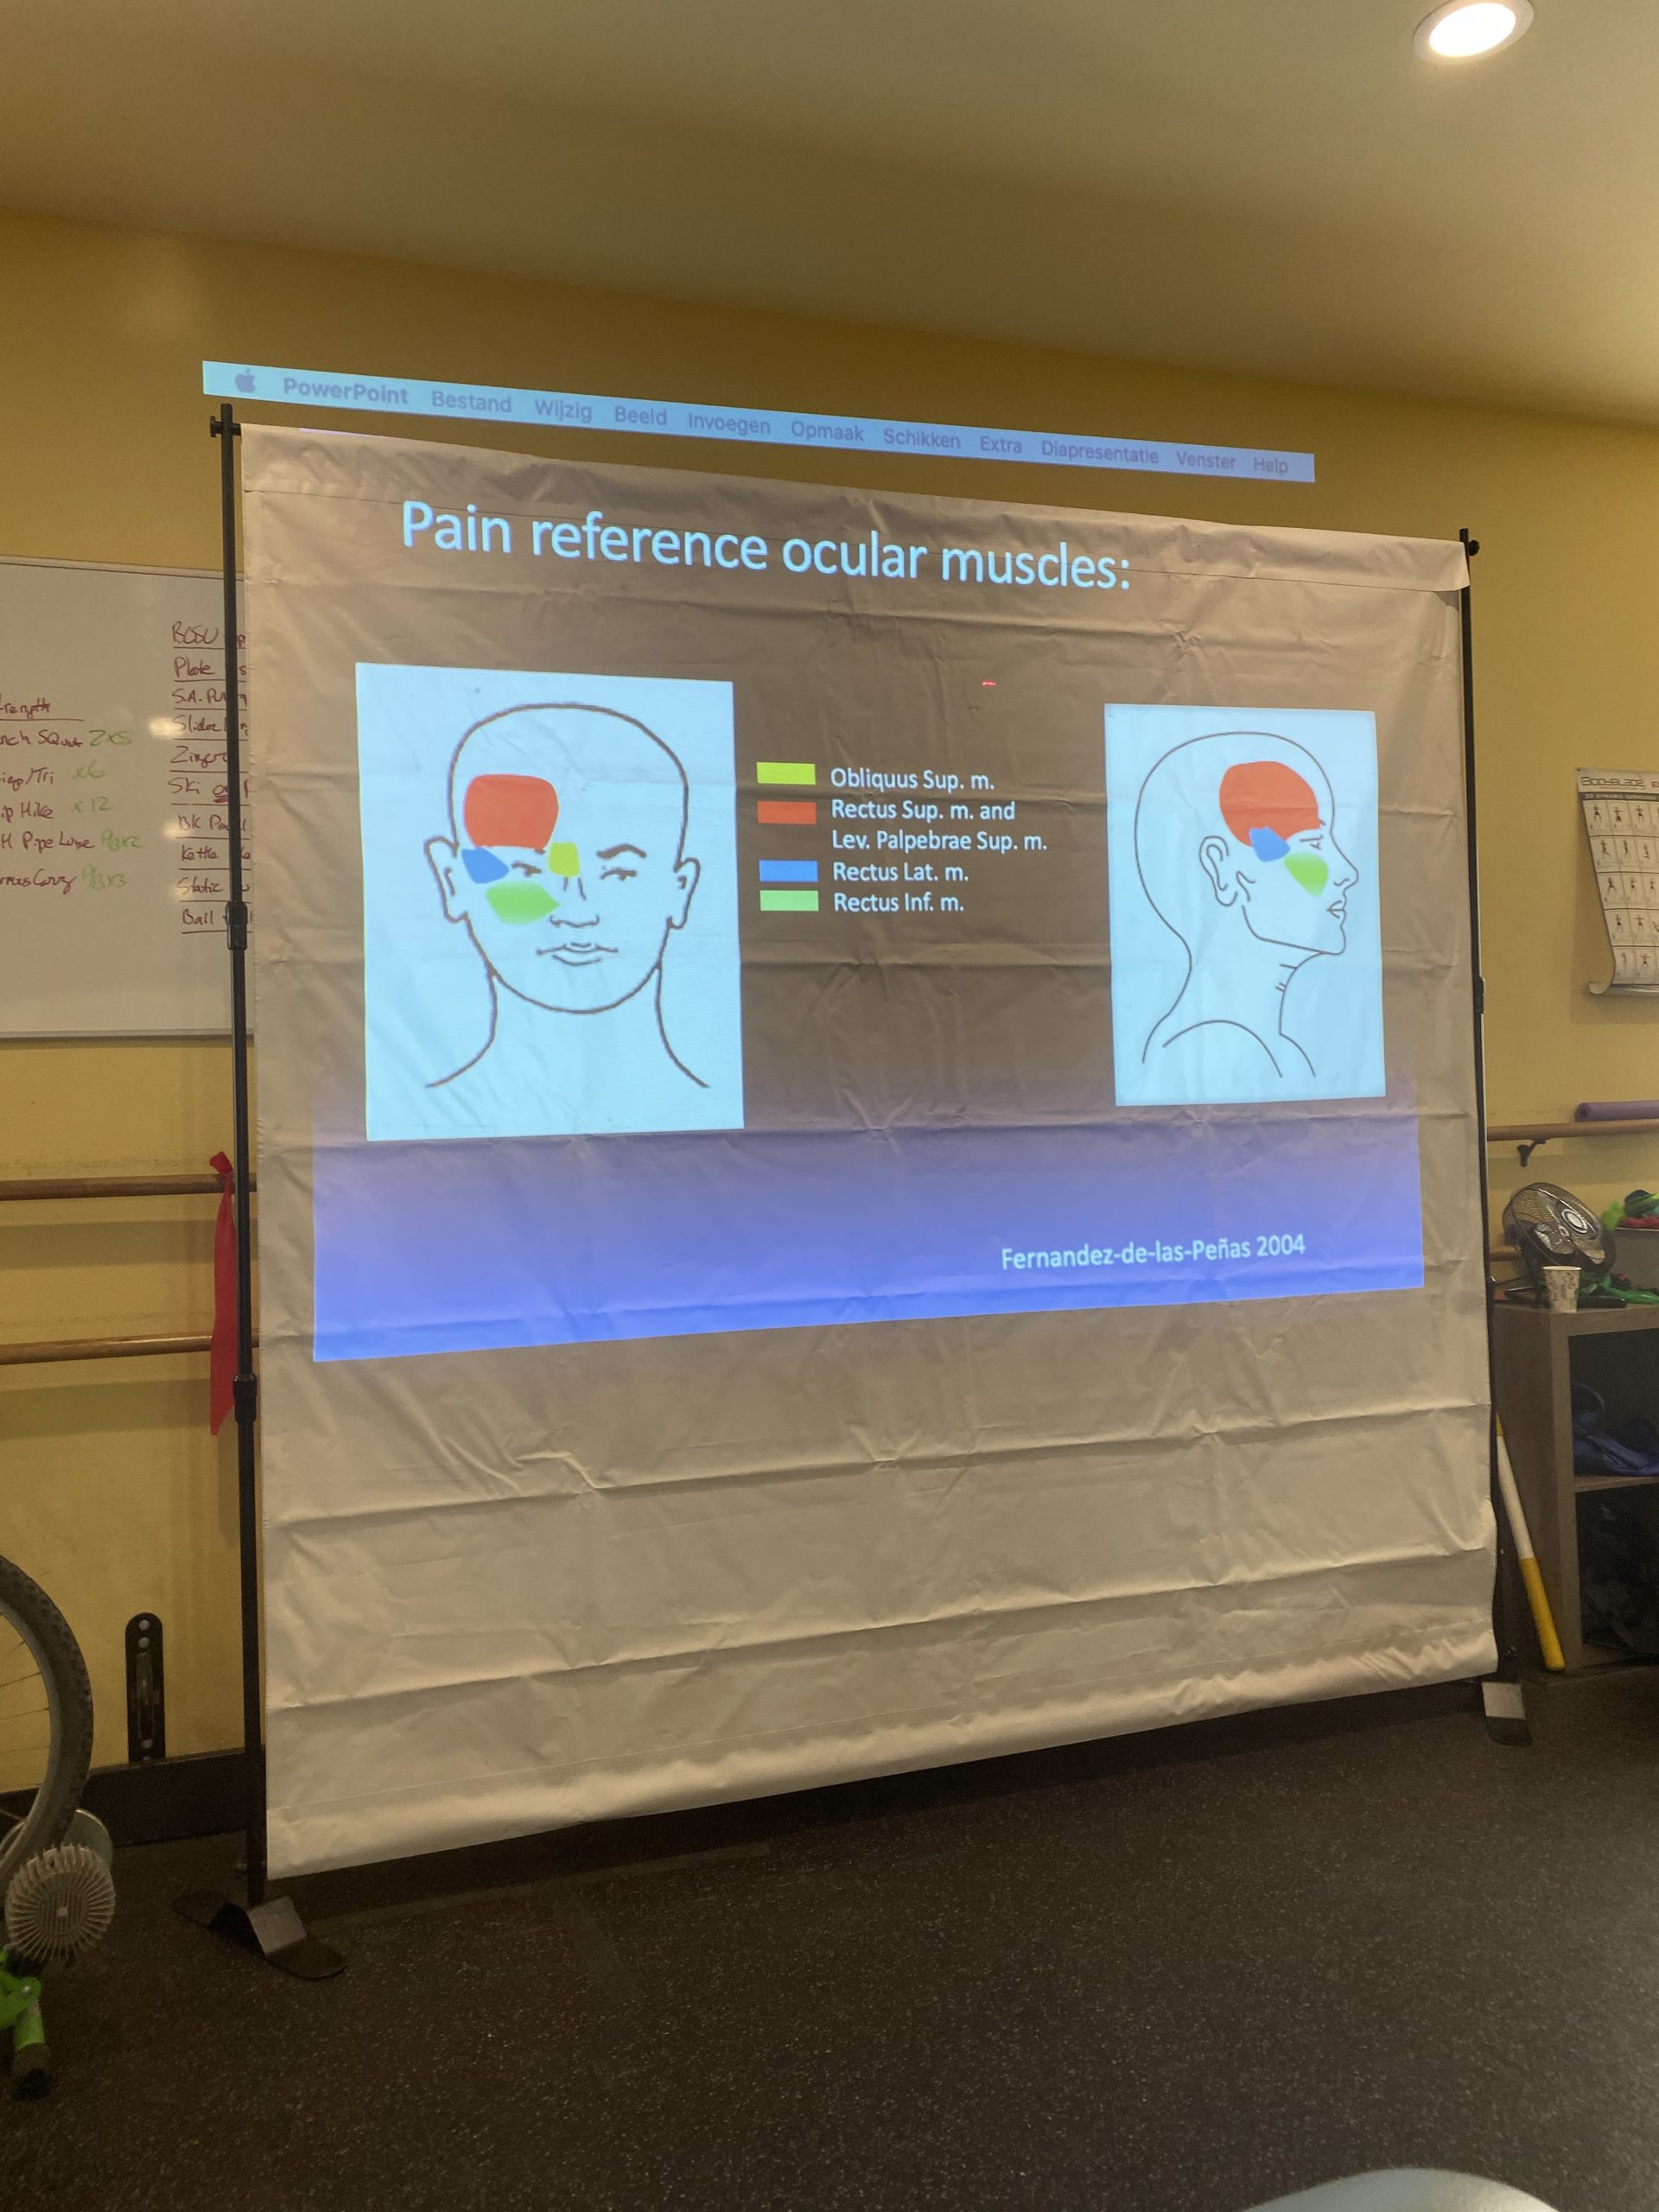 TMJ Courses for Physical Therapists | Inside look at TMD ...